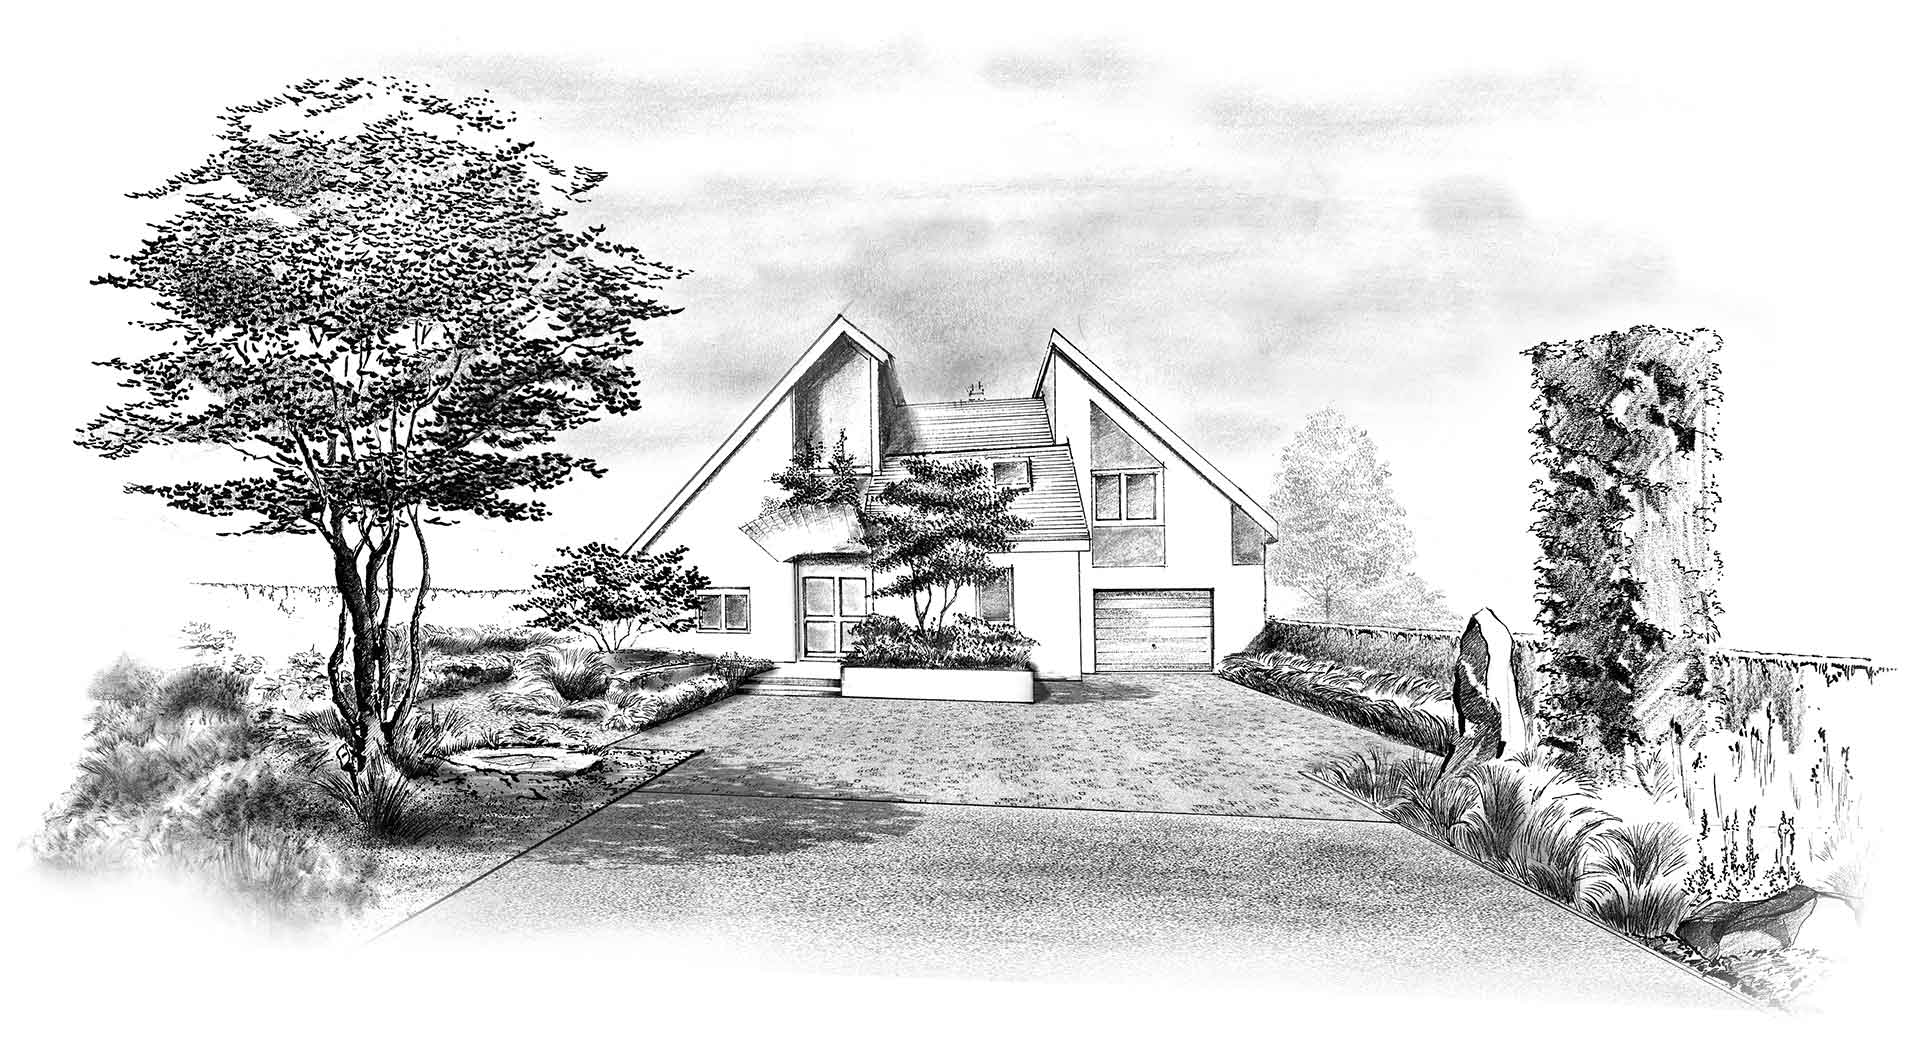 Hand-drawn sketch of a planned private garden